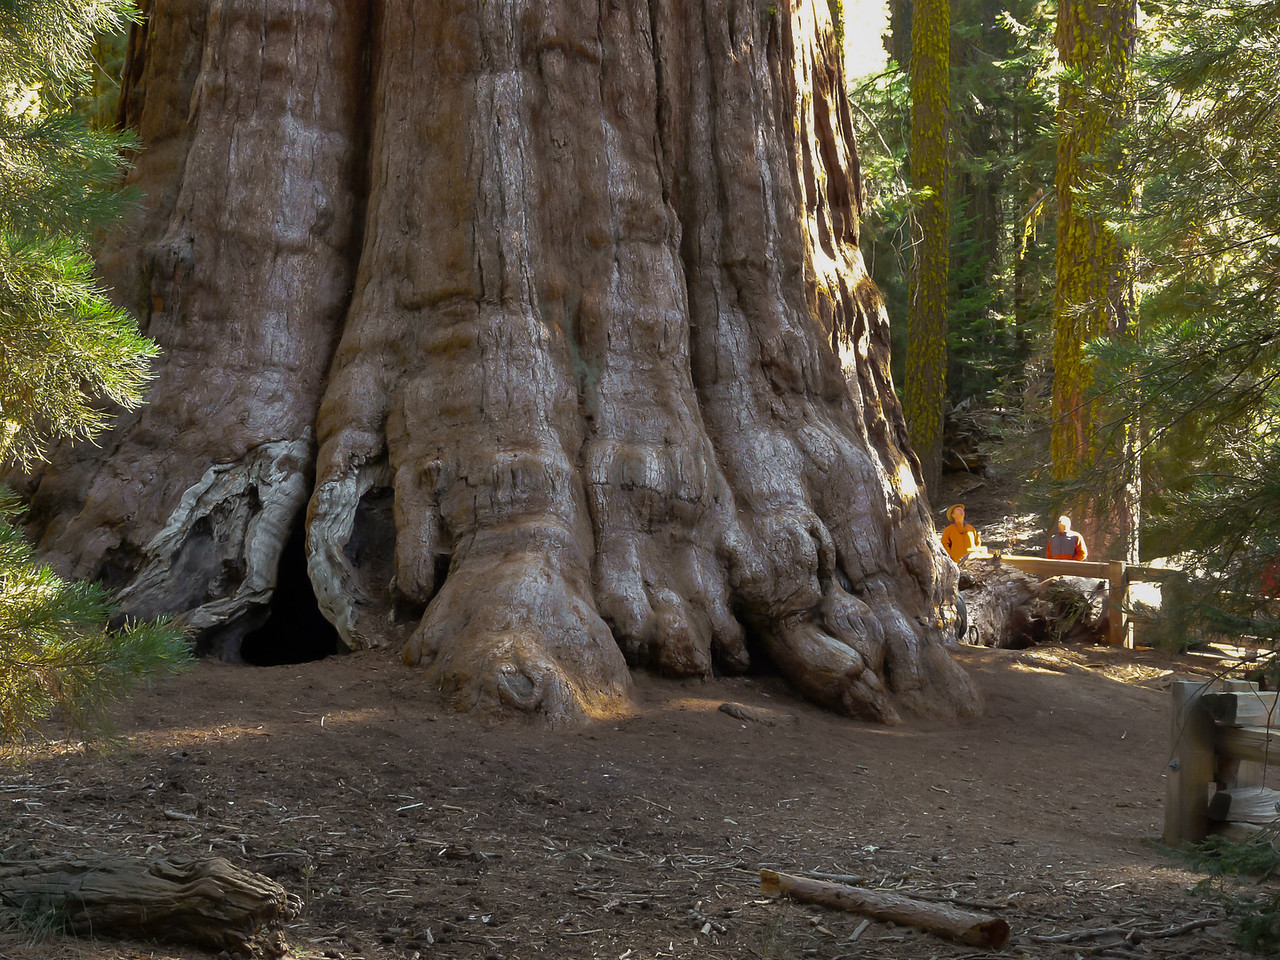 It's hard to capture the scale of this thing.  By volume, the Sherman Tree is the largest tree in the world.